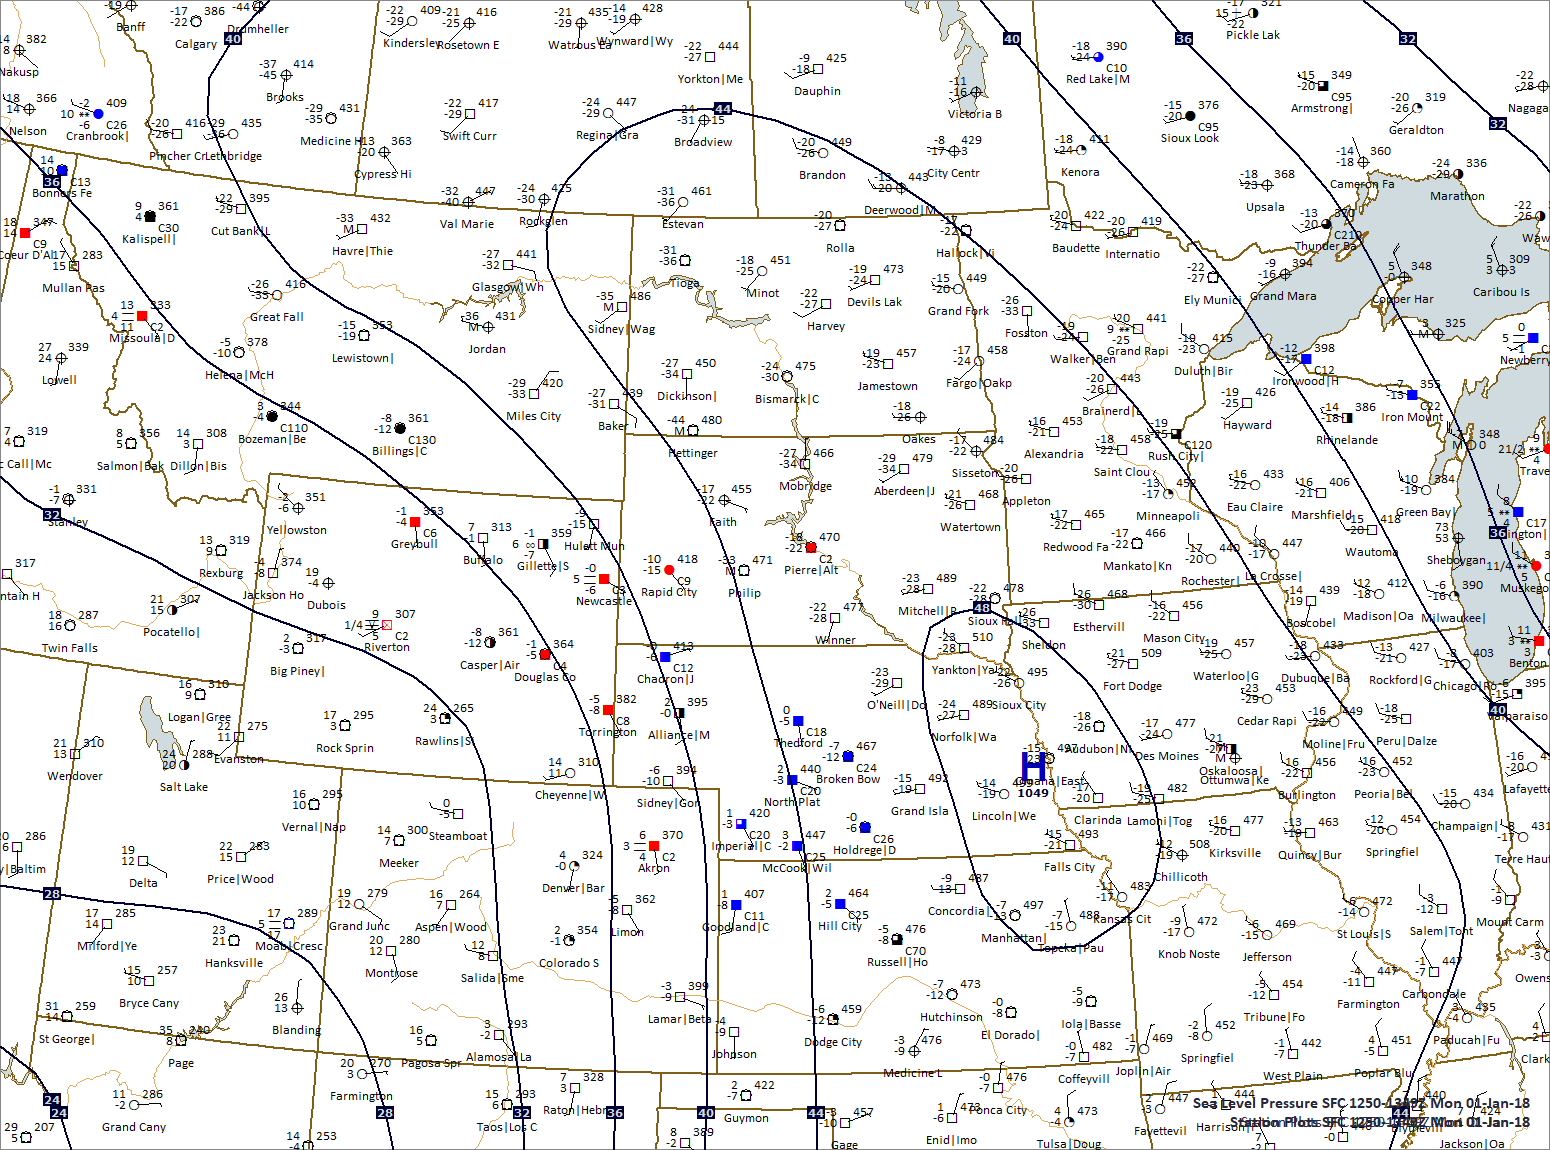 Data plotted by Digital Atmosphere - Software available at www.weathergraphics.com